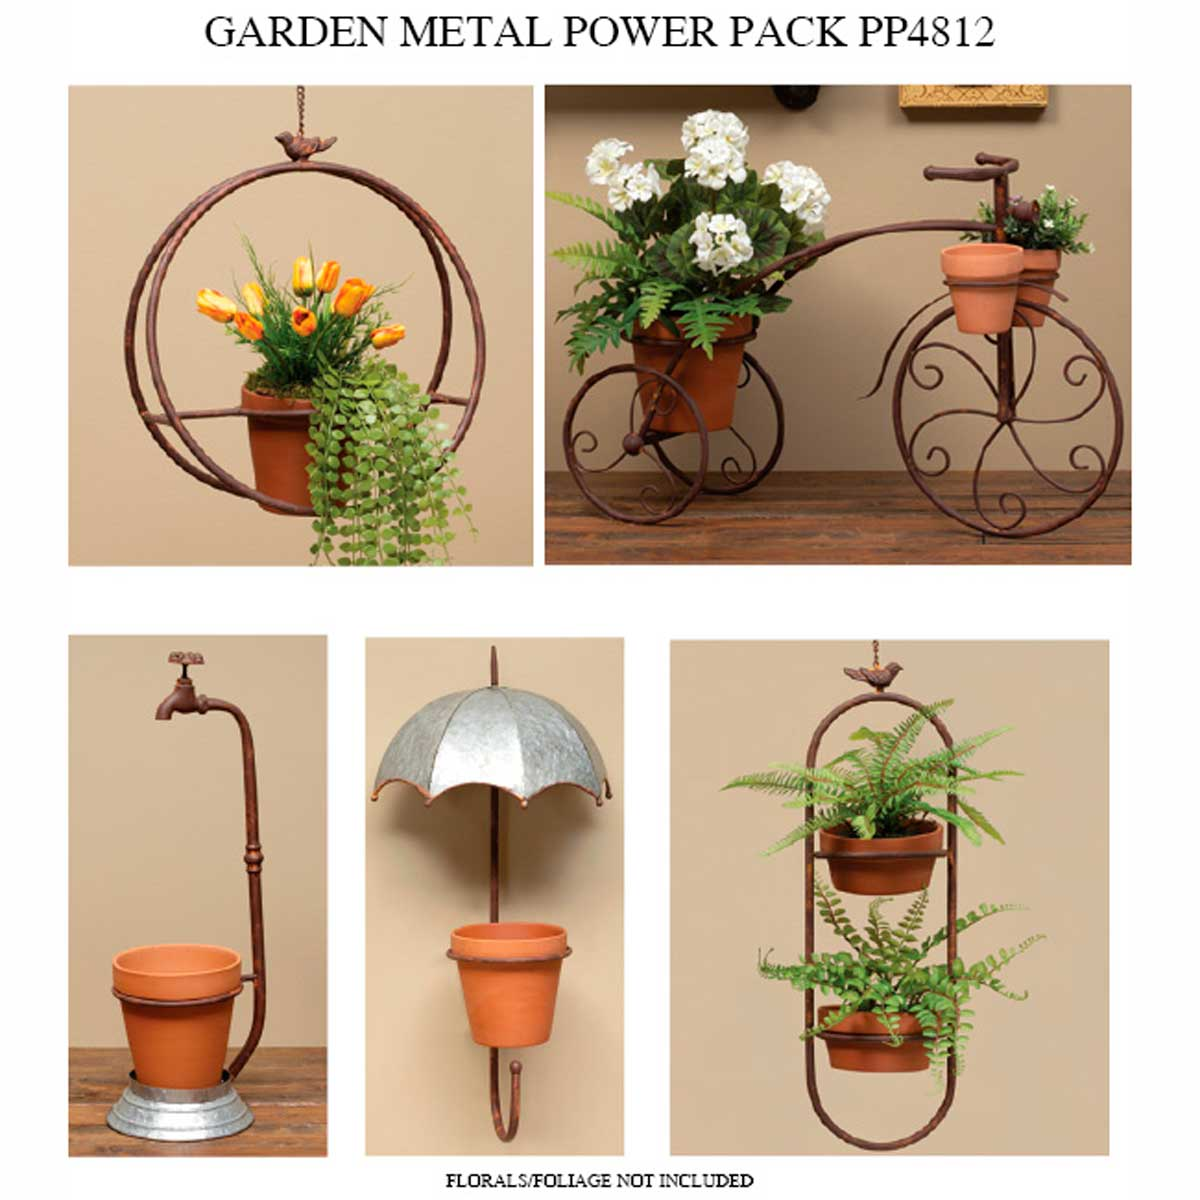 METAL GARDEN POWER PACK 5 UNITS